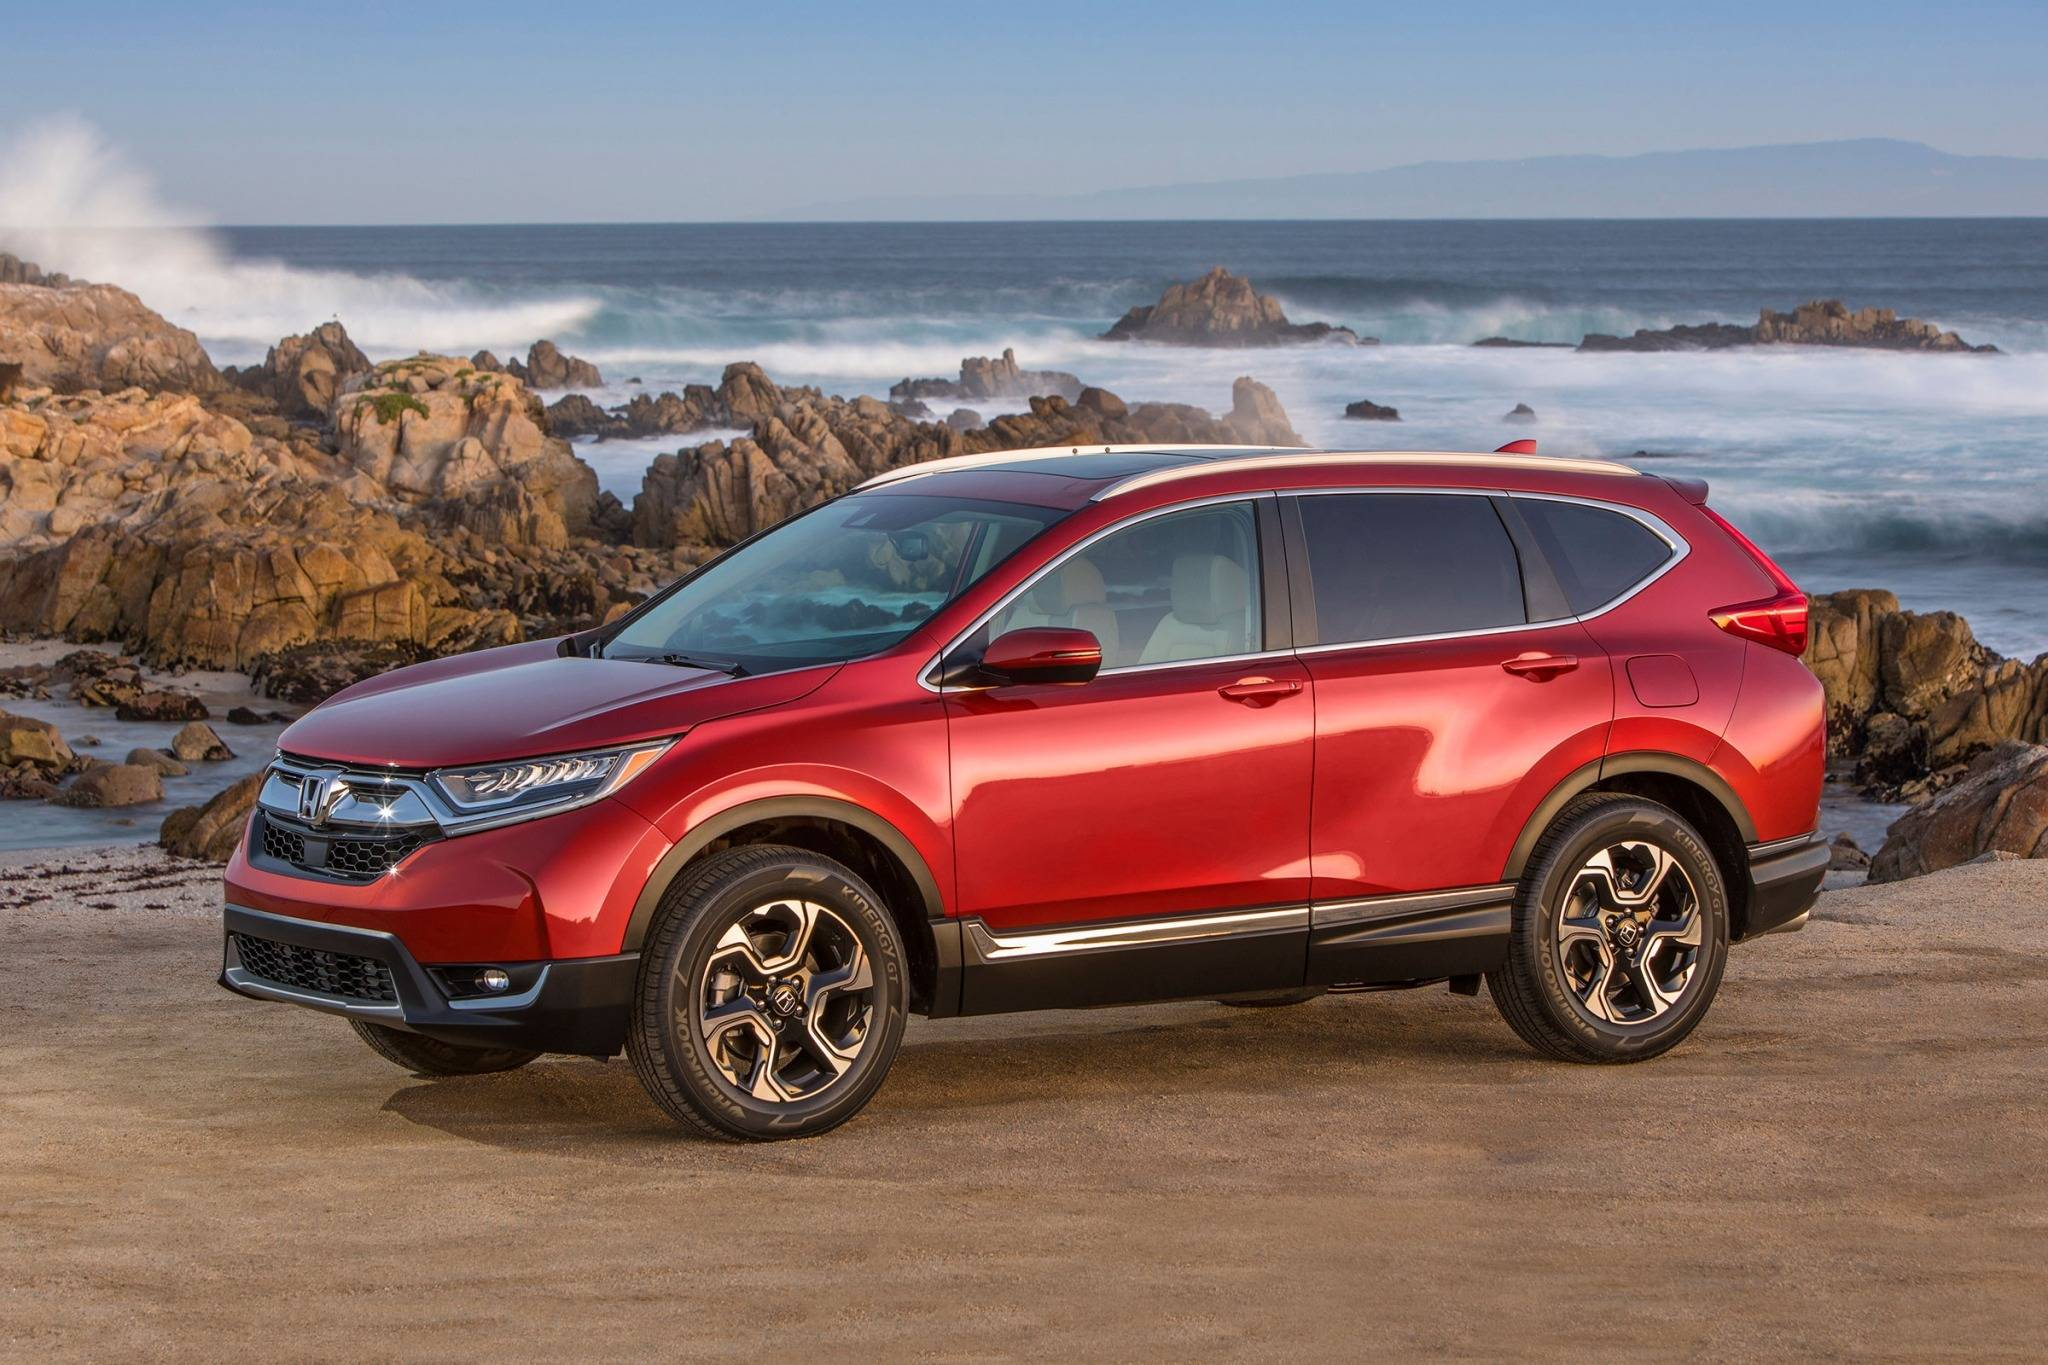 honda cr suv touring lx ex 2wd edmunds vs autodetective ratings models deals cherokee jeep vin pricing save 4dr larger